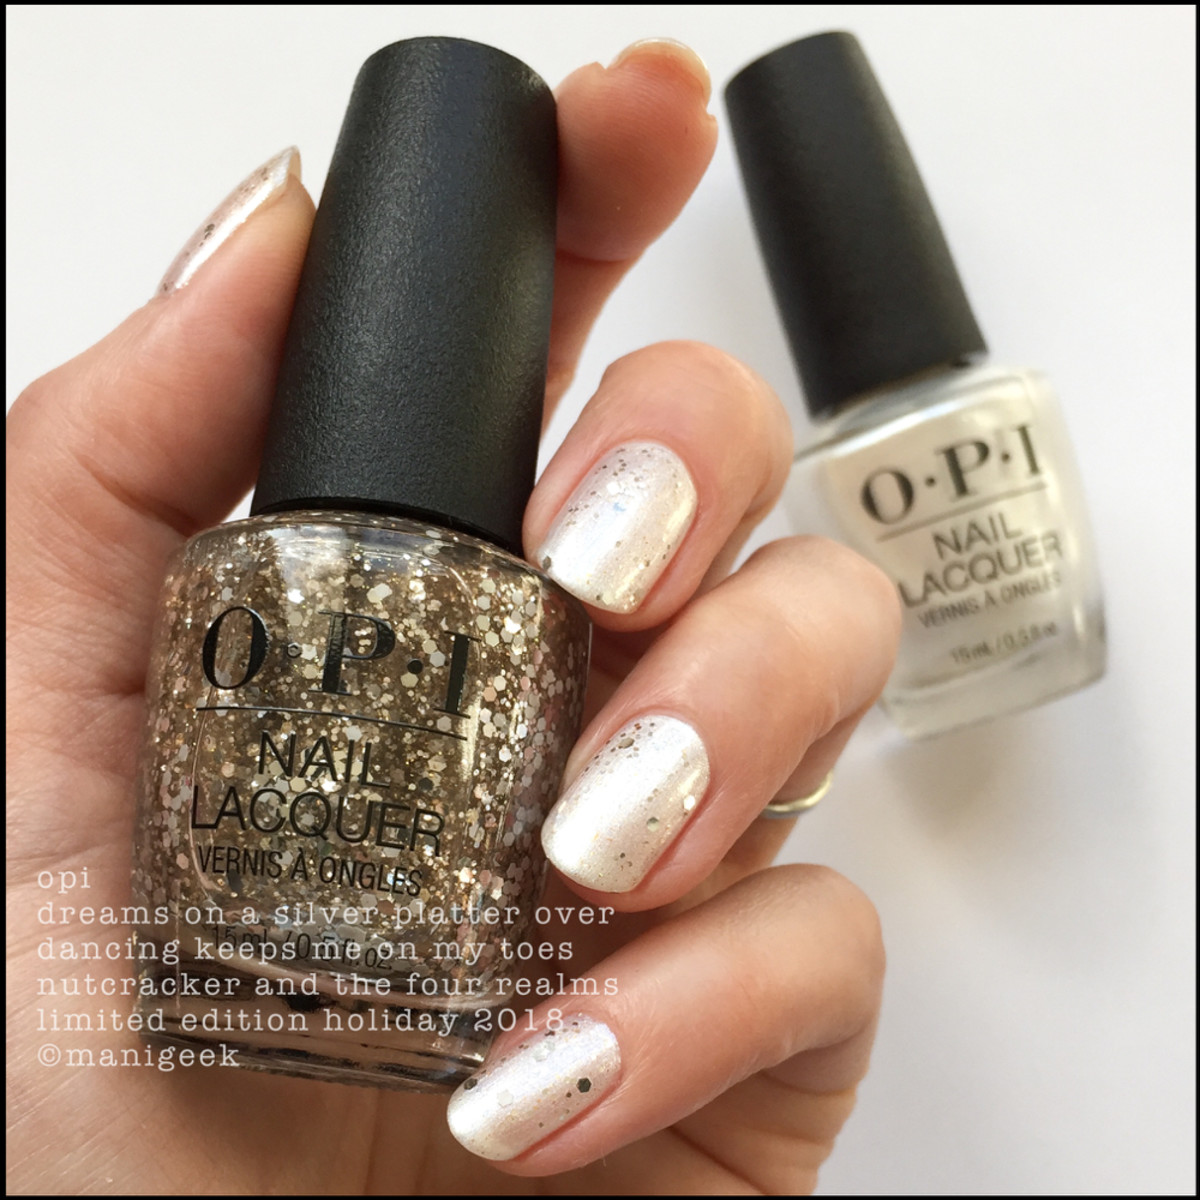 OPI Dreams on a Silver Platter over Dancing Keeps Me On My Toes - OPI Nutcracker Holiday 2018